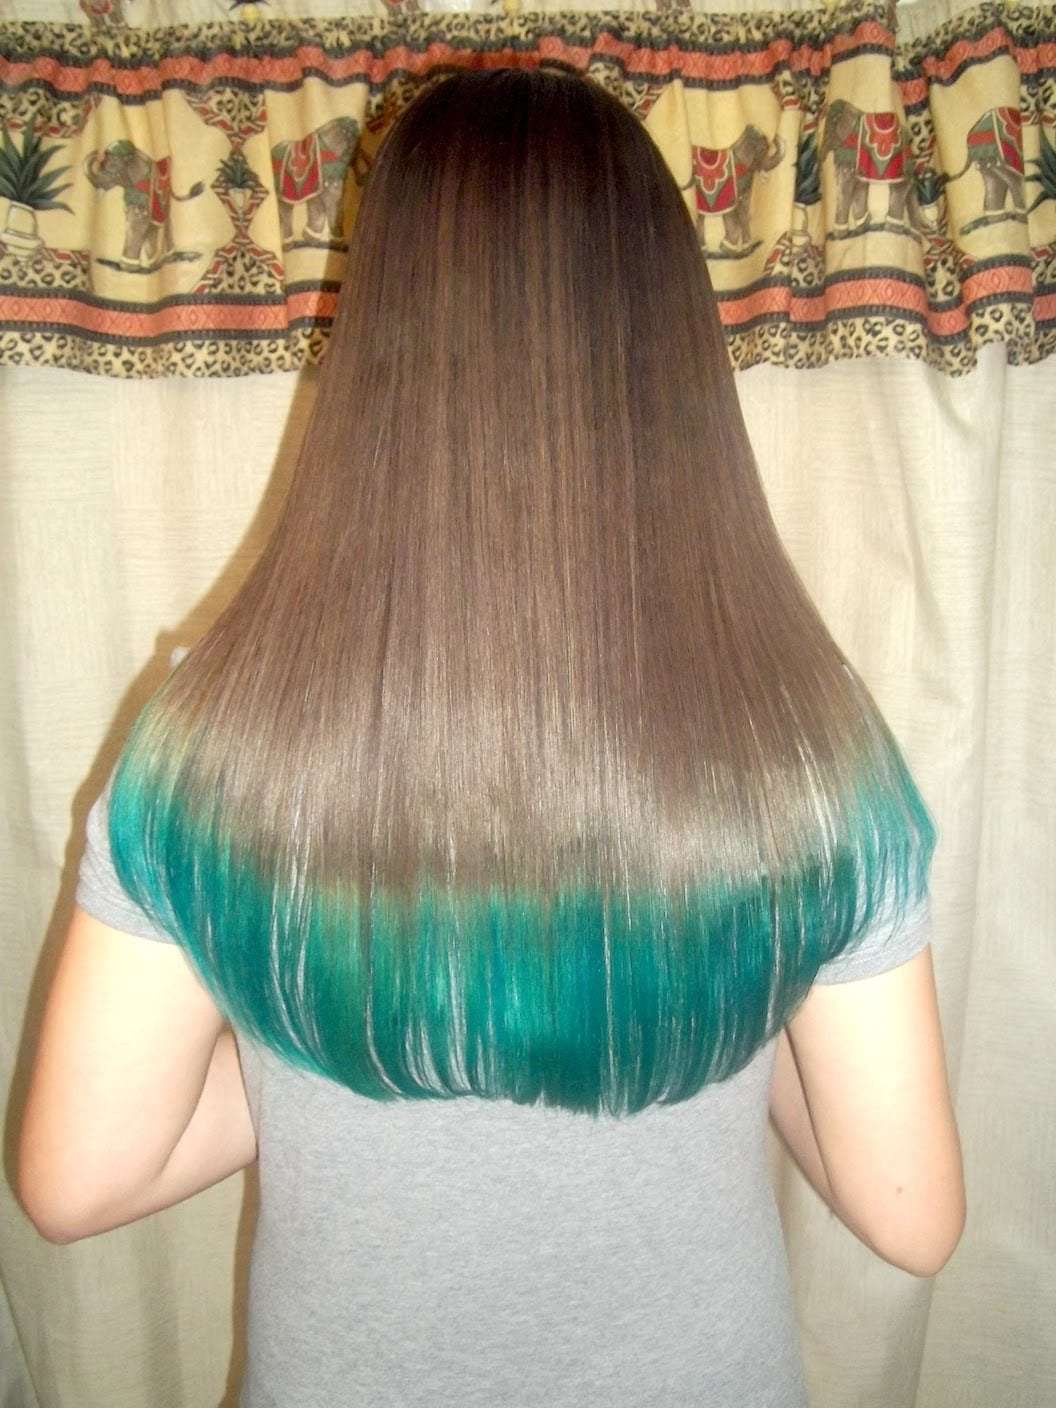 How To Dye Your Hair Tips Teal Turquoise